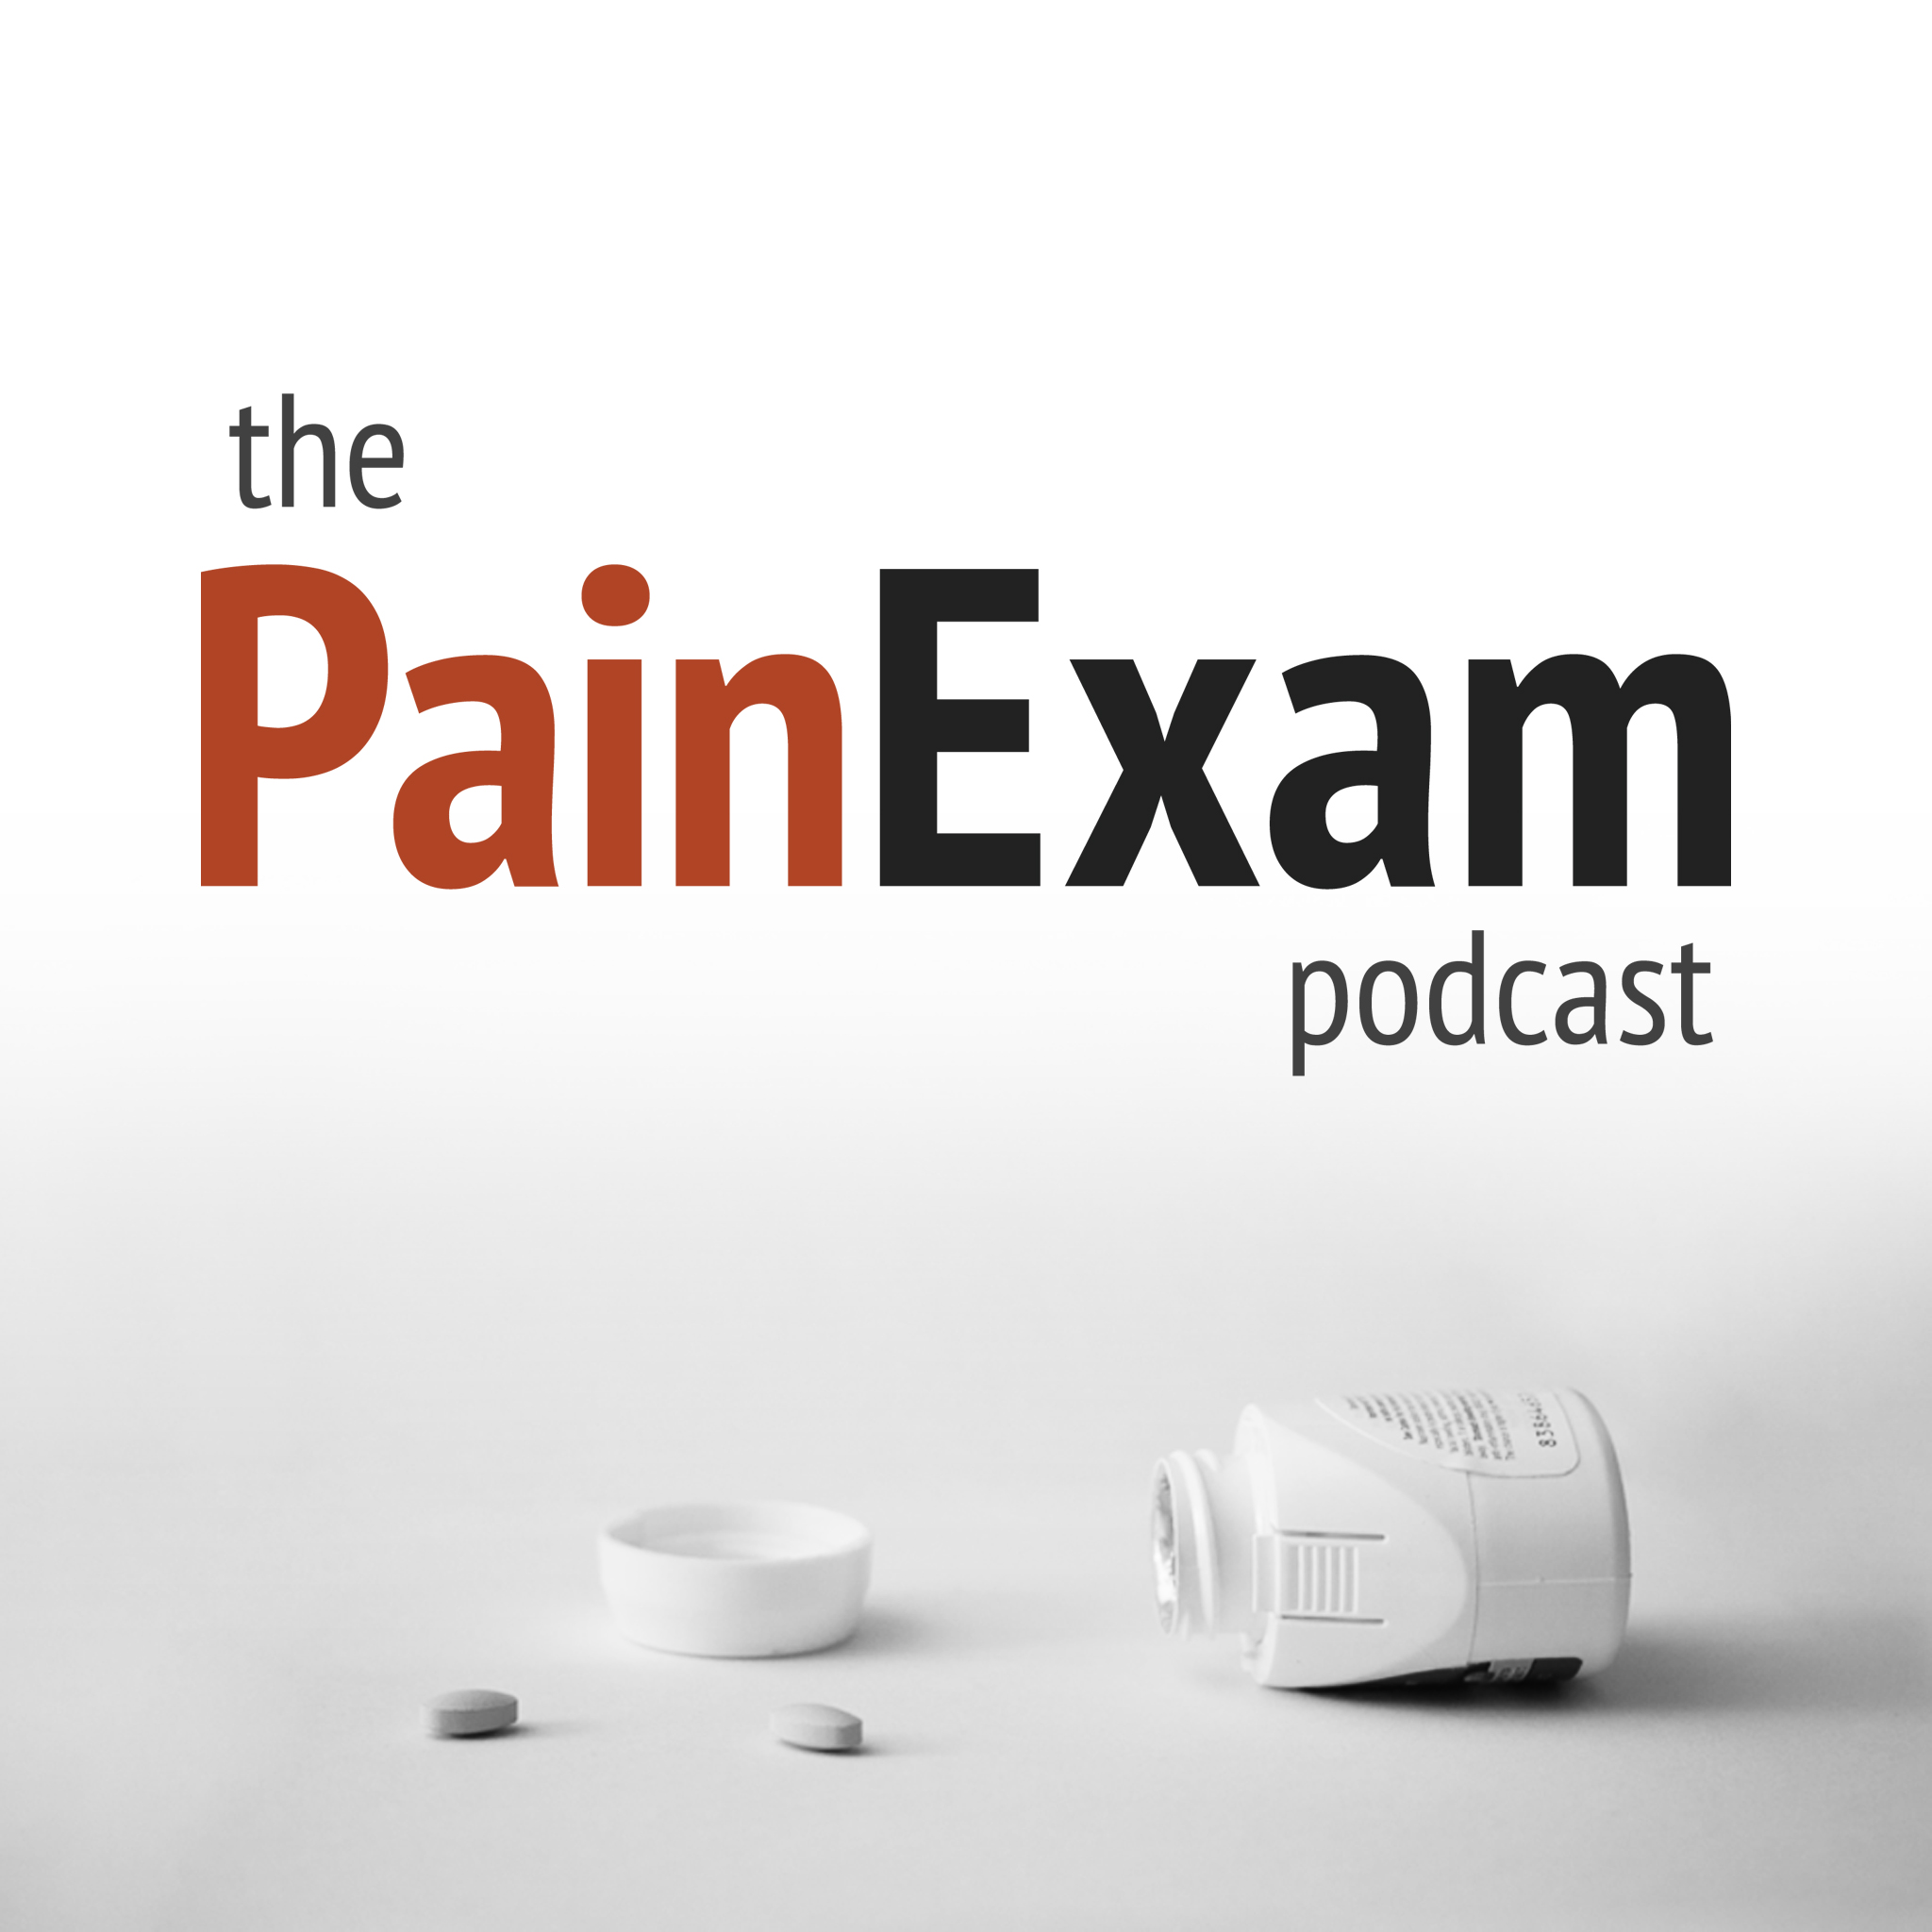 The PainExam podcast show art